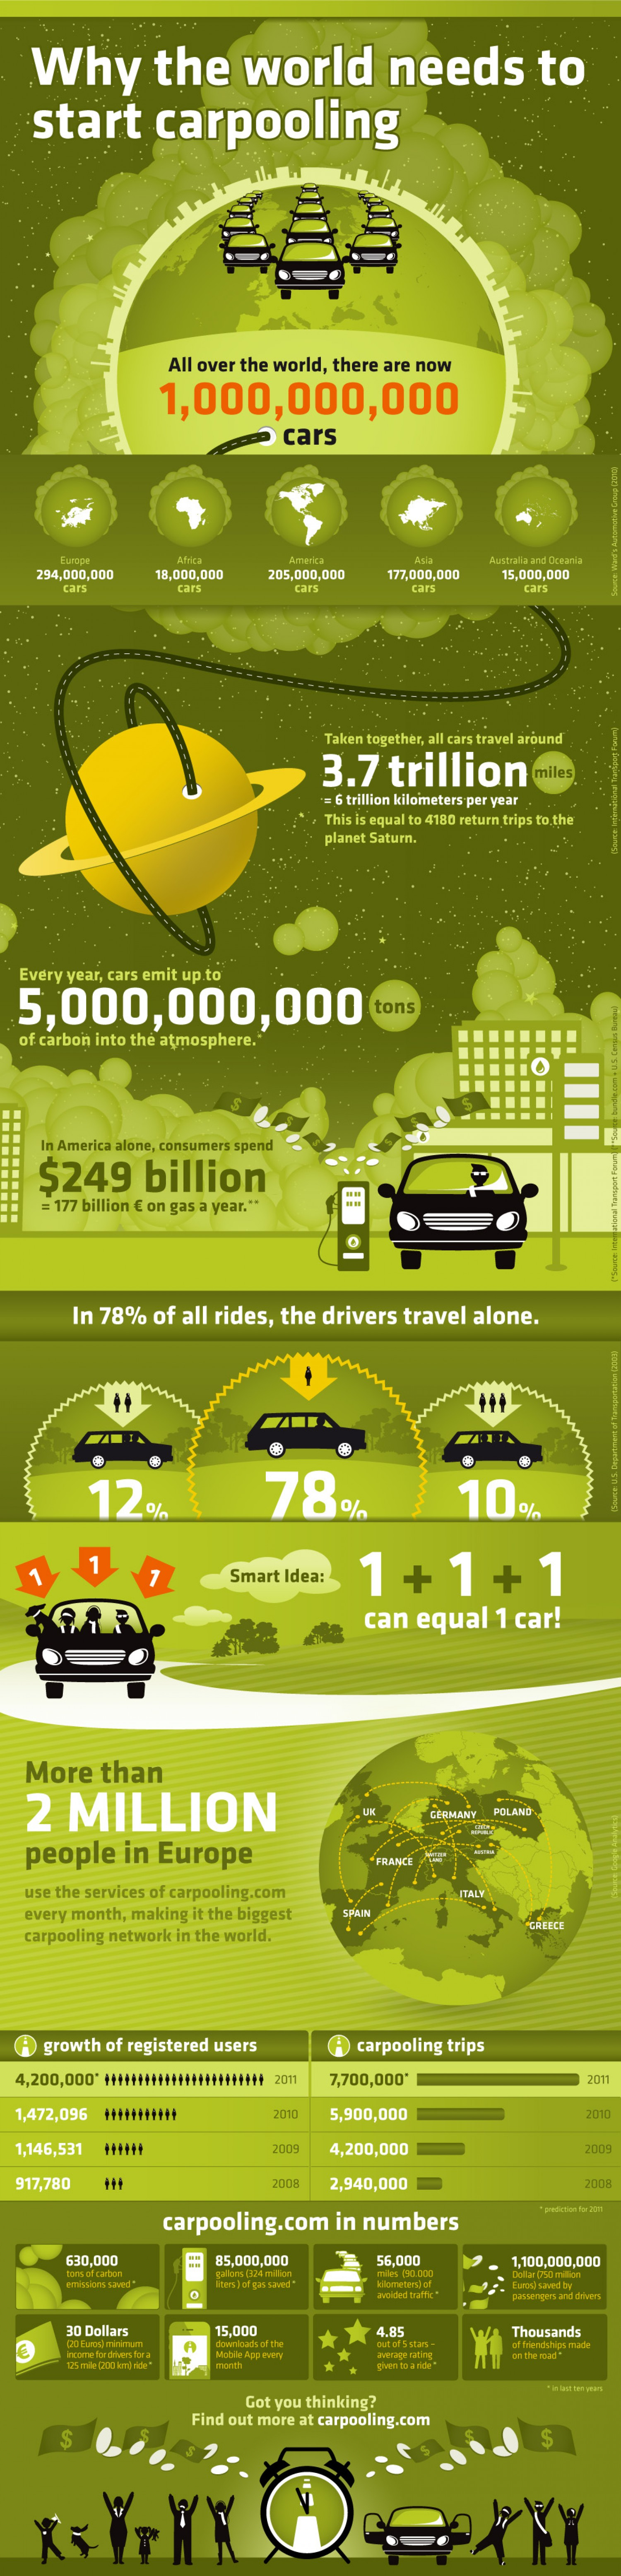 14. Why the World Needs to Start Car-sharing